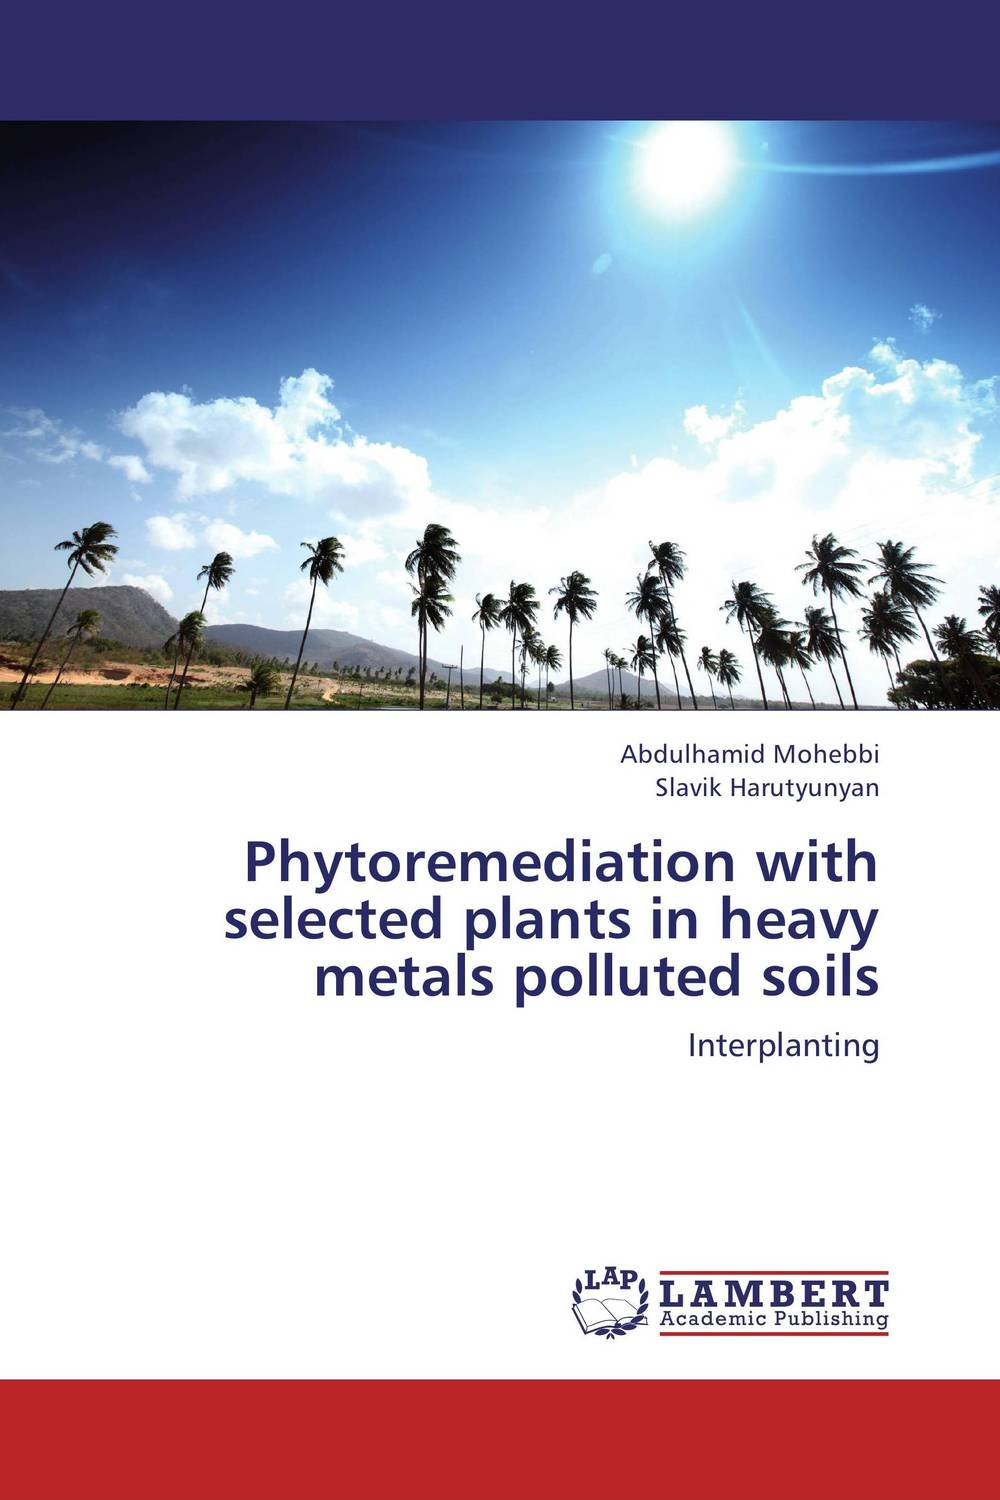 Phytoremediation with selected plants in heavy metals polluted soils belousov a security features of banknotes and other documents methods of authentication manual денежные билеты бланки ценных бумаг и документов